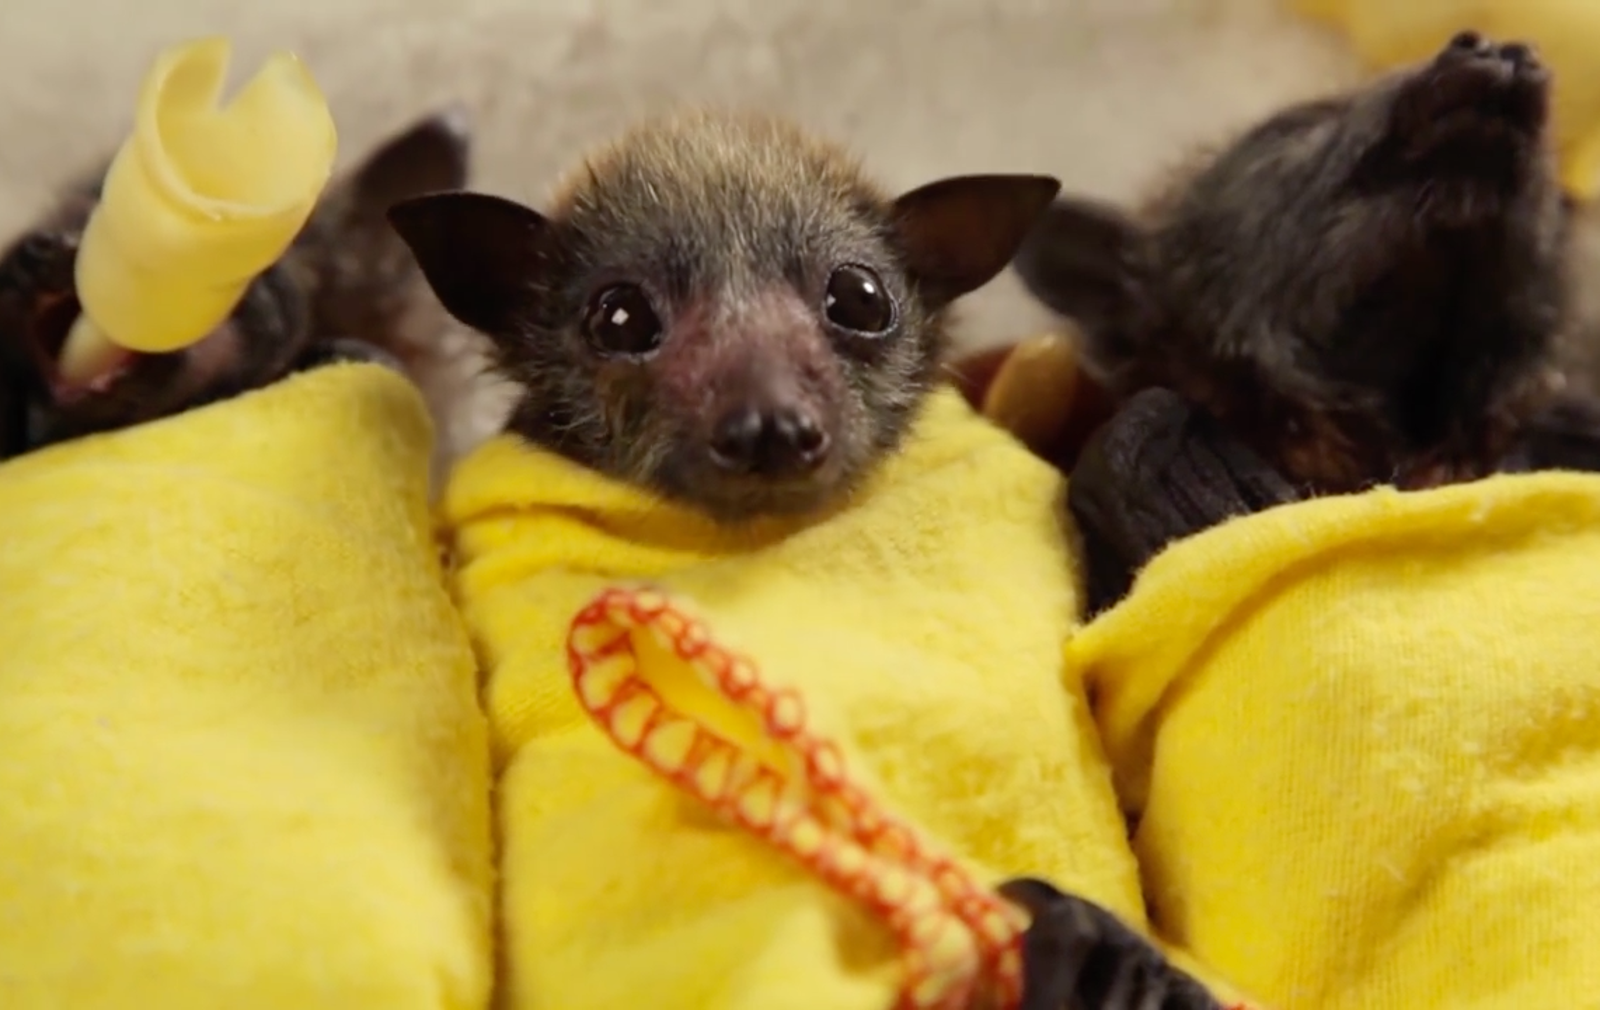 Rescued Baby Bats Wrapped in Blankets Are Possibly The Cutest Thing You'll See All Week